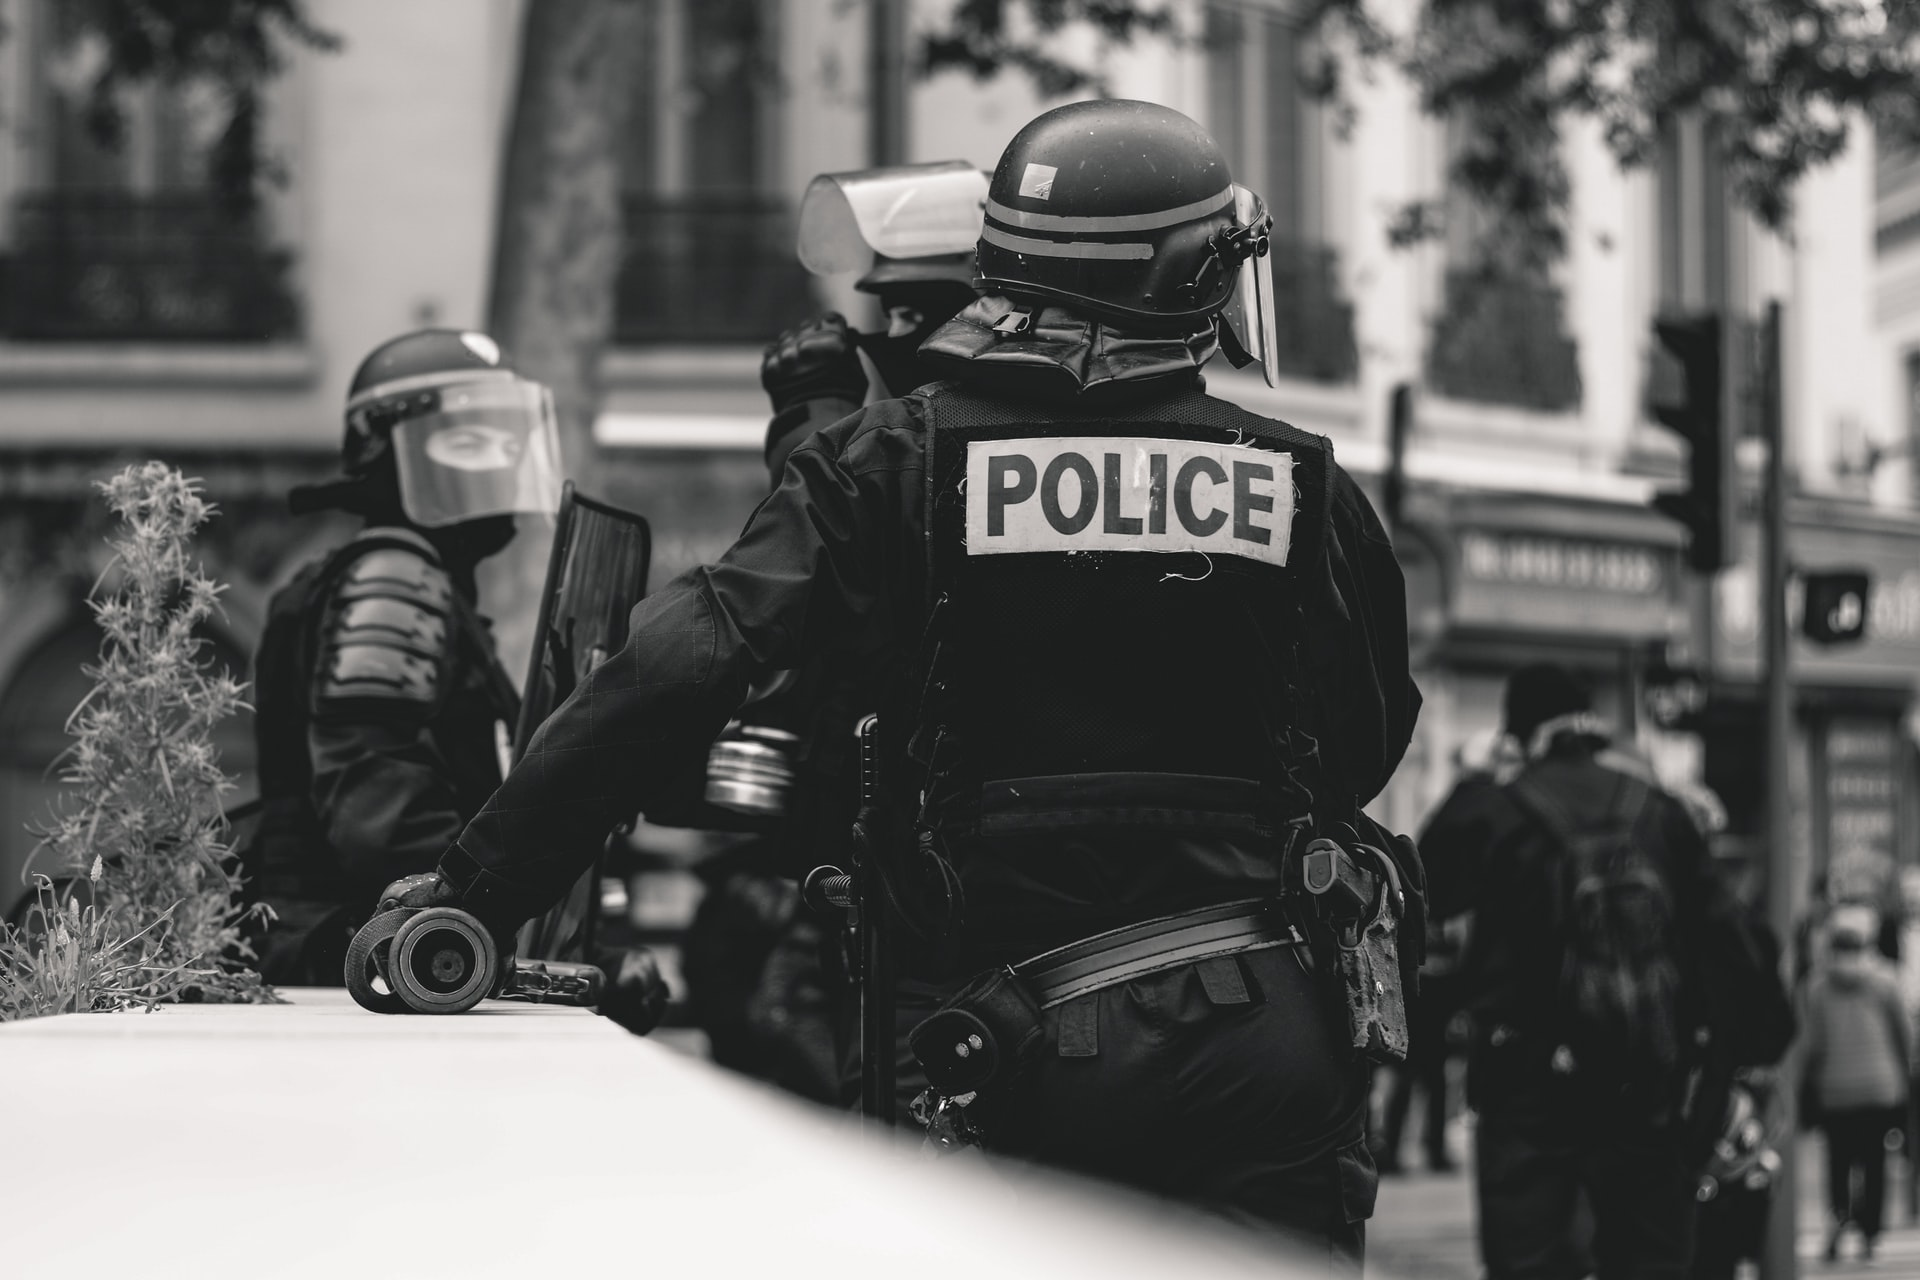 Lawmakers Threaten to Take Back Control of the Police